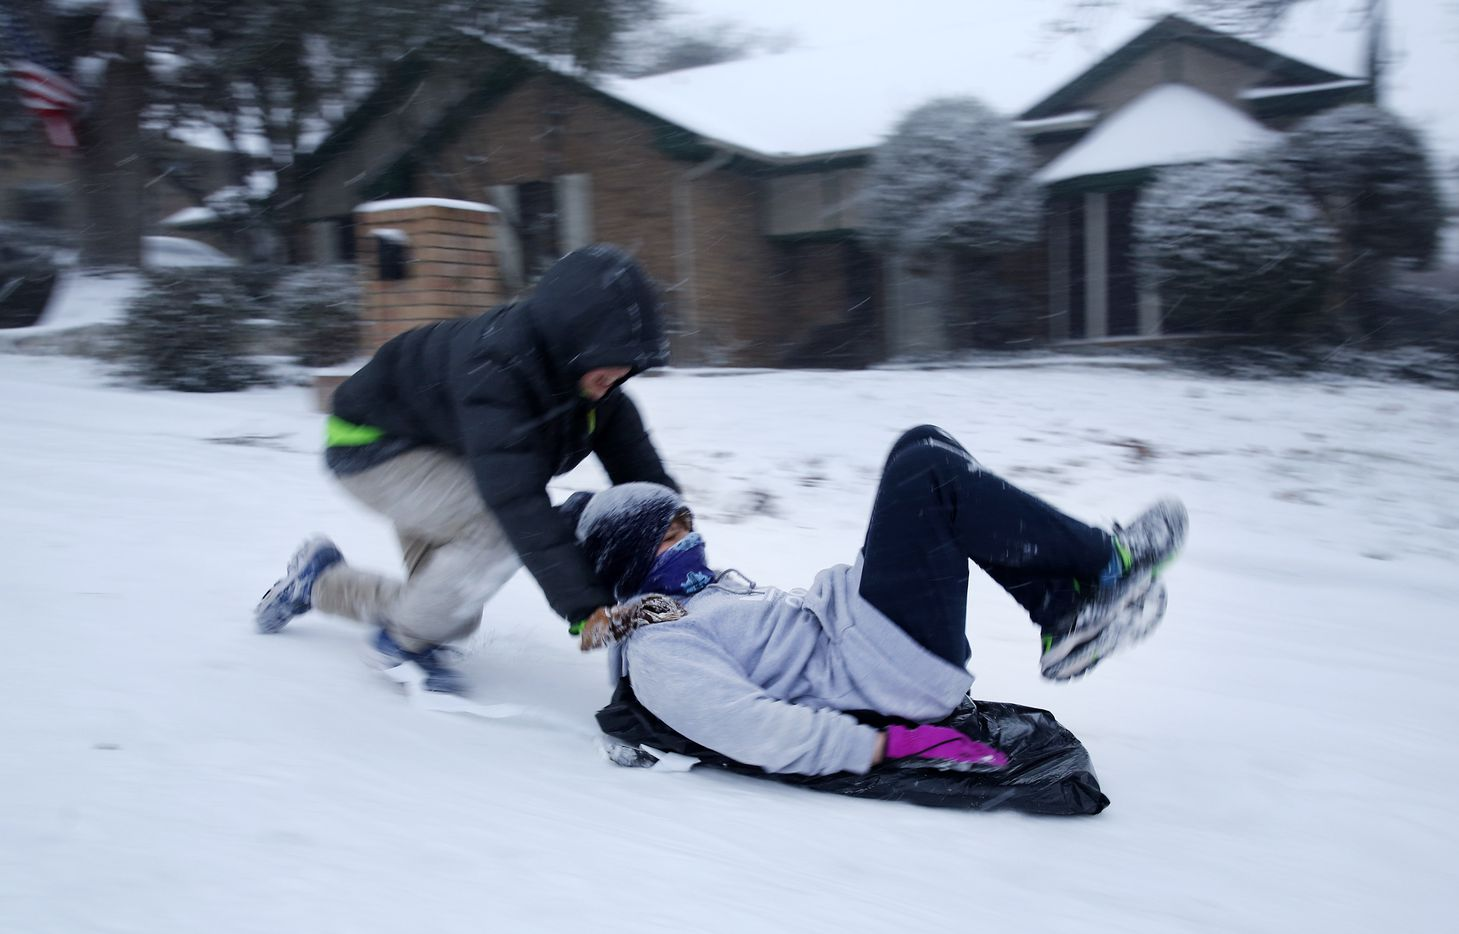 Mitchell Hulme pushes his friend Andew Lim down a steep snow covered street in North Arlington as they sledded, Sunday, February 14, 2021. (Tom Fox/The Dallas Morning News)